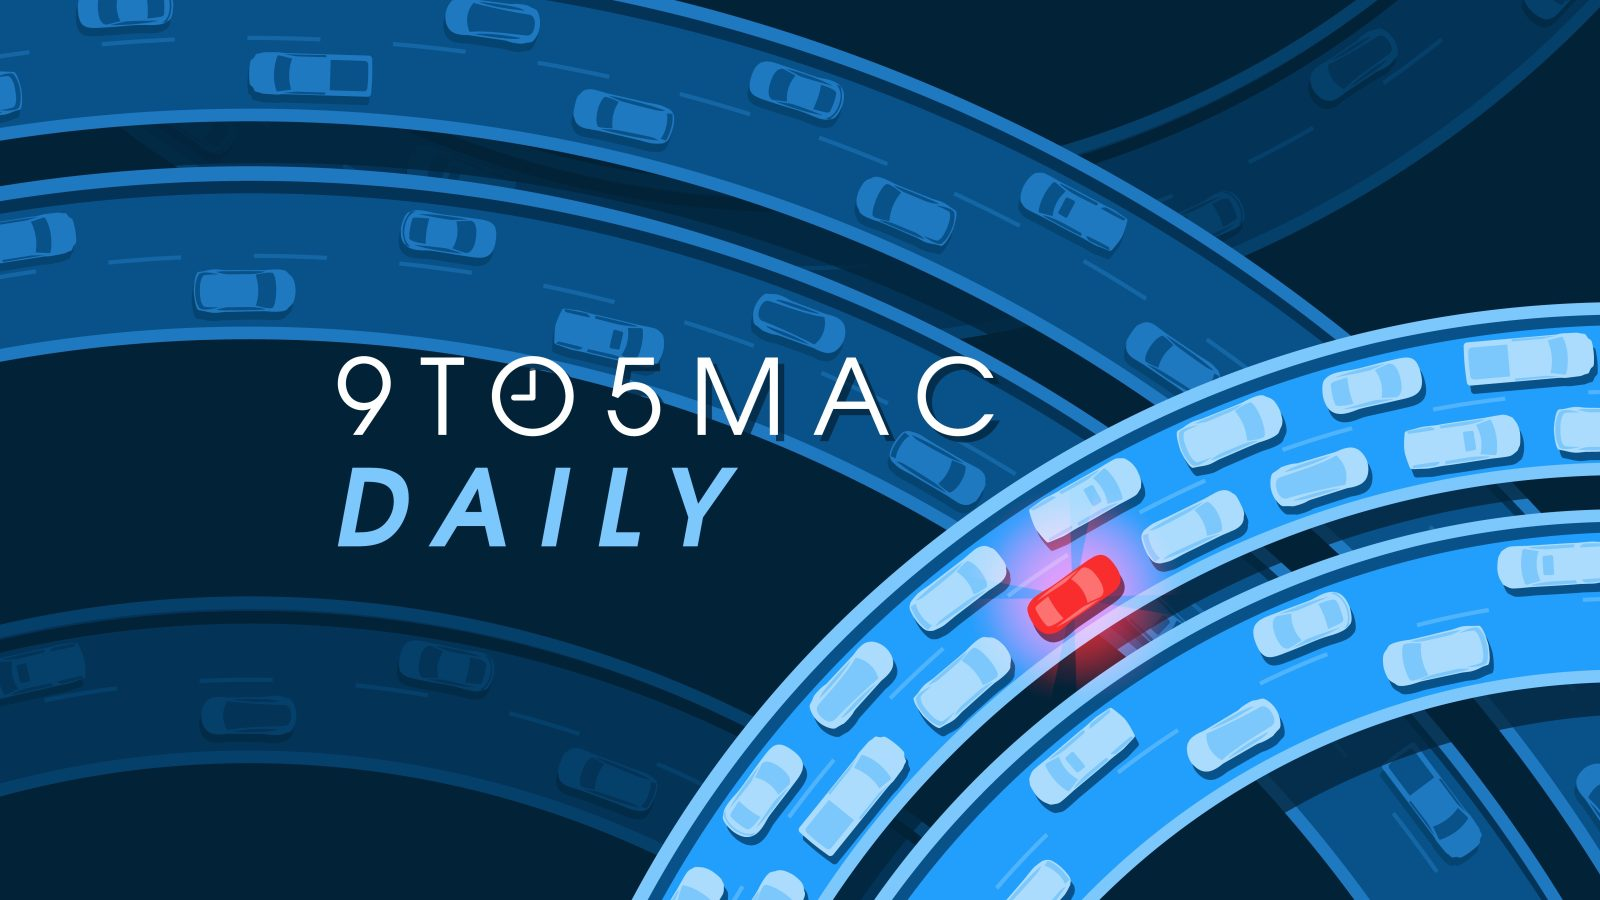 9to5Mac Daily: January 22, 2020 – New iPad Pro and Smart Keyboard rumors, more